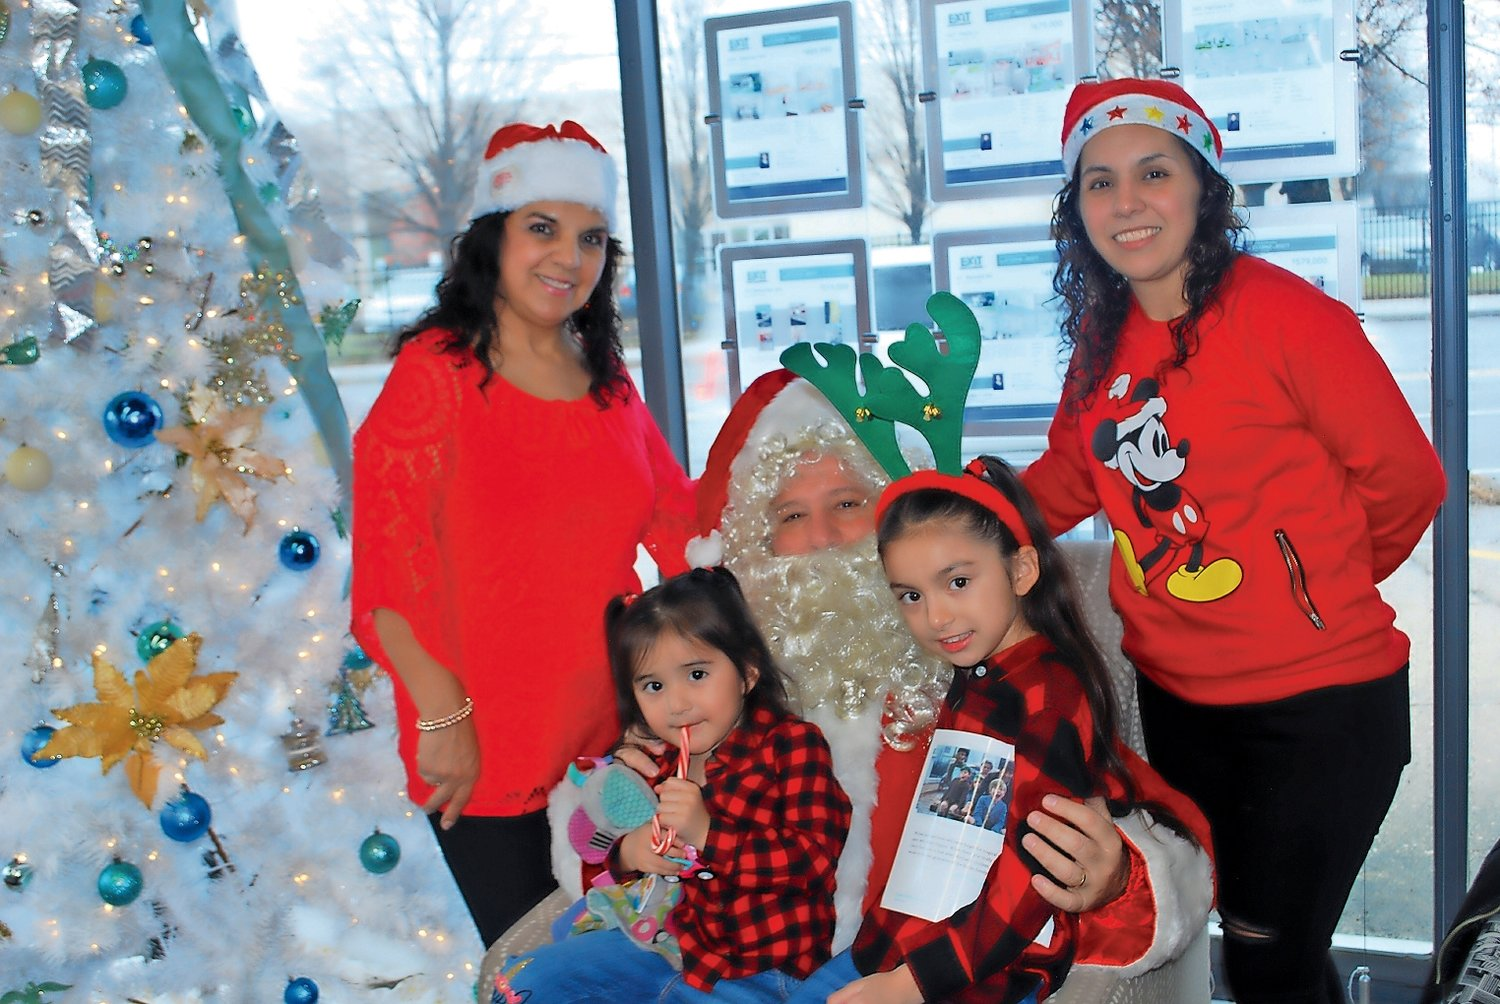 Grandmother Irma and daughter Yuliana Romero posed for a photo with Santa and kids Veronica, 3 1/2, and Catalina Ramirez, 7.